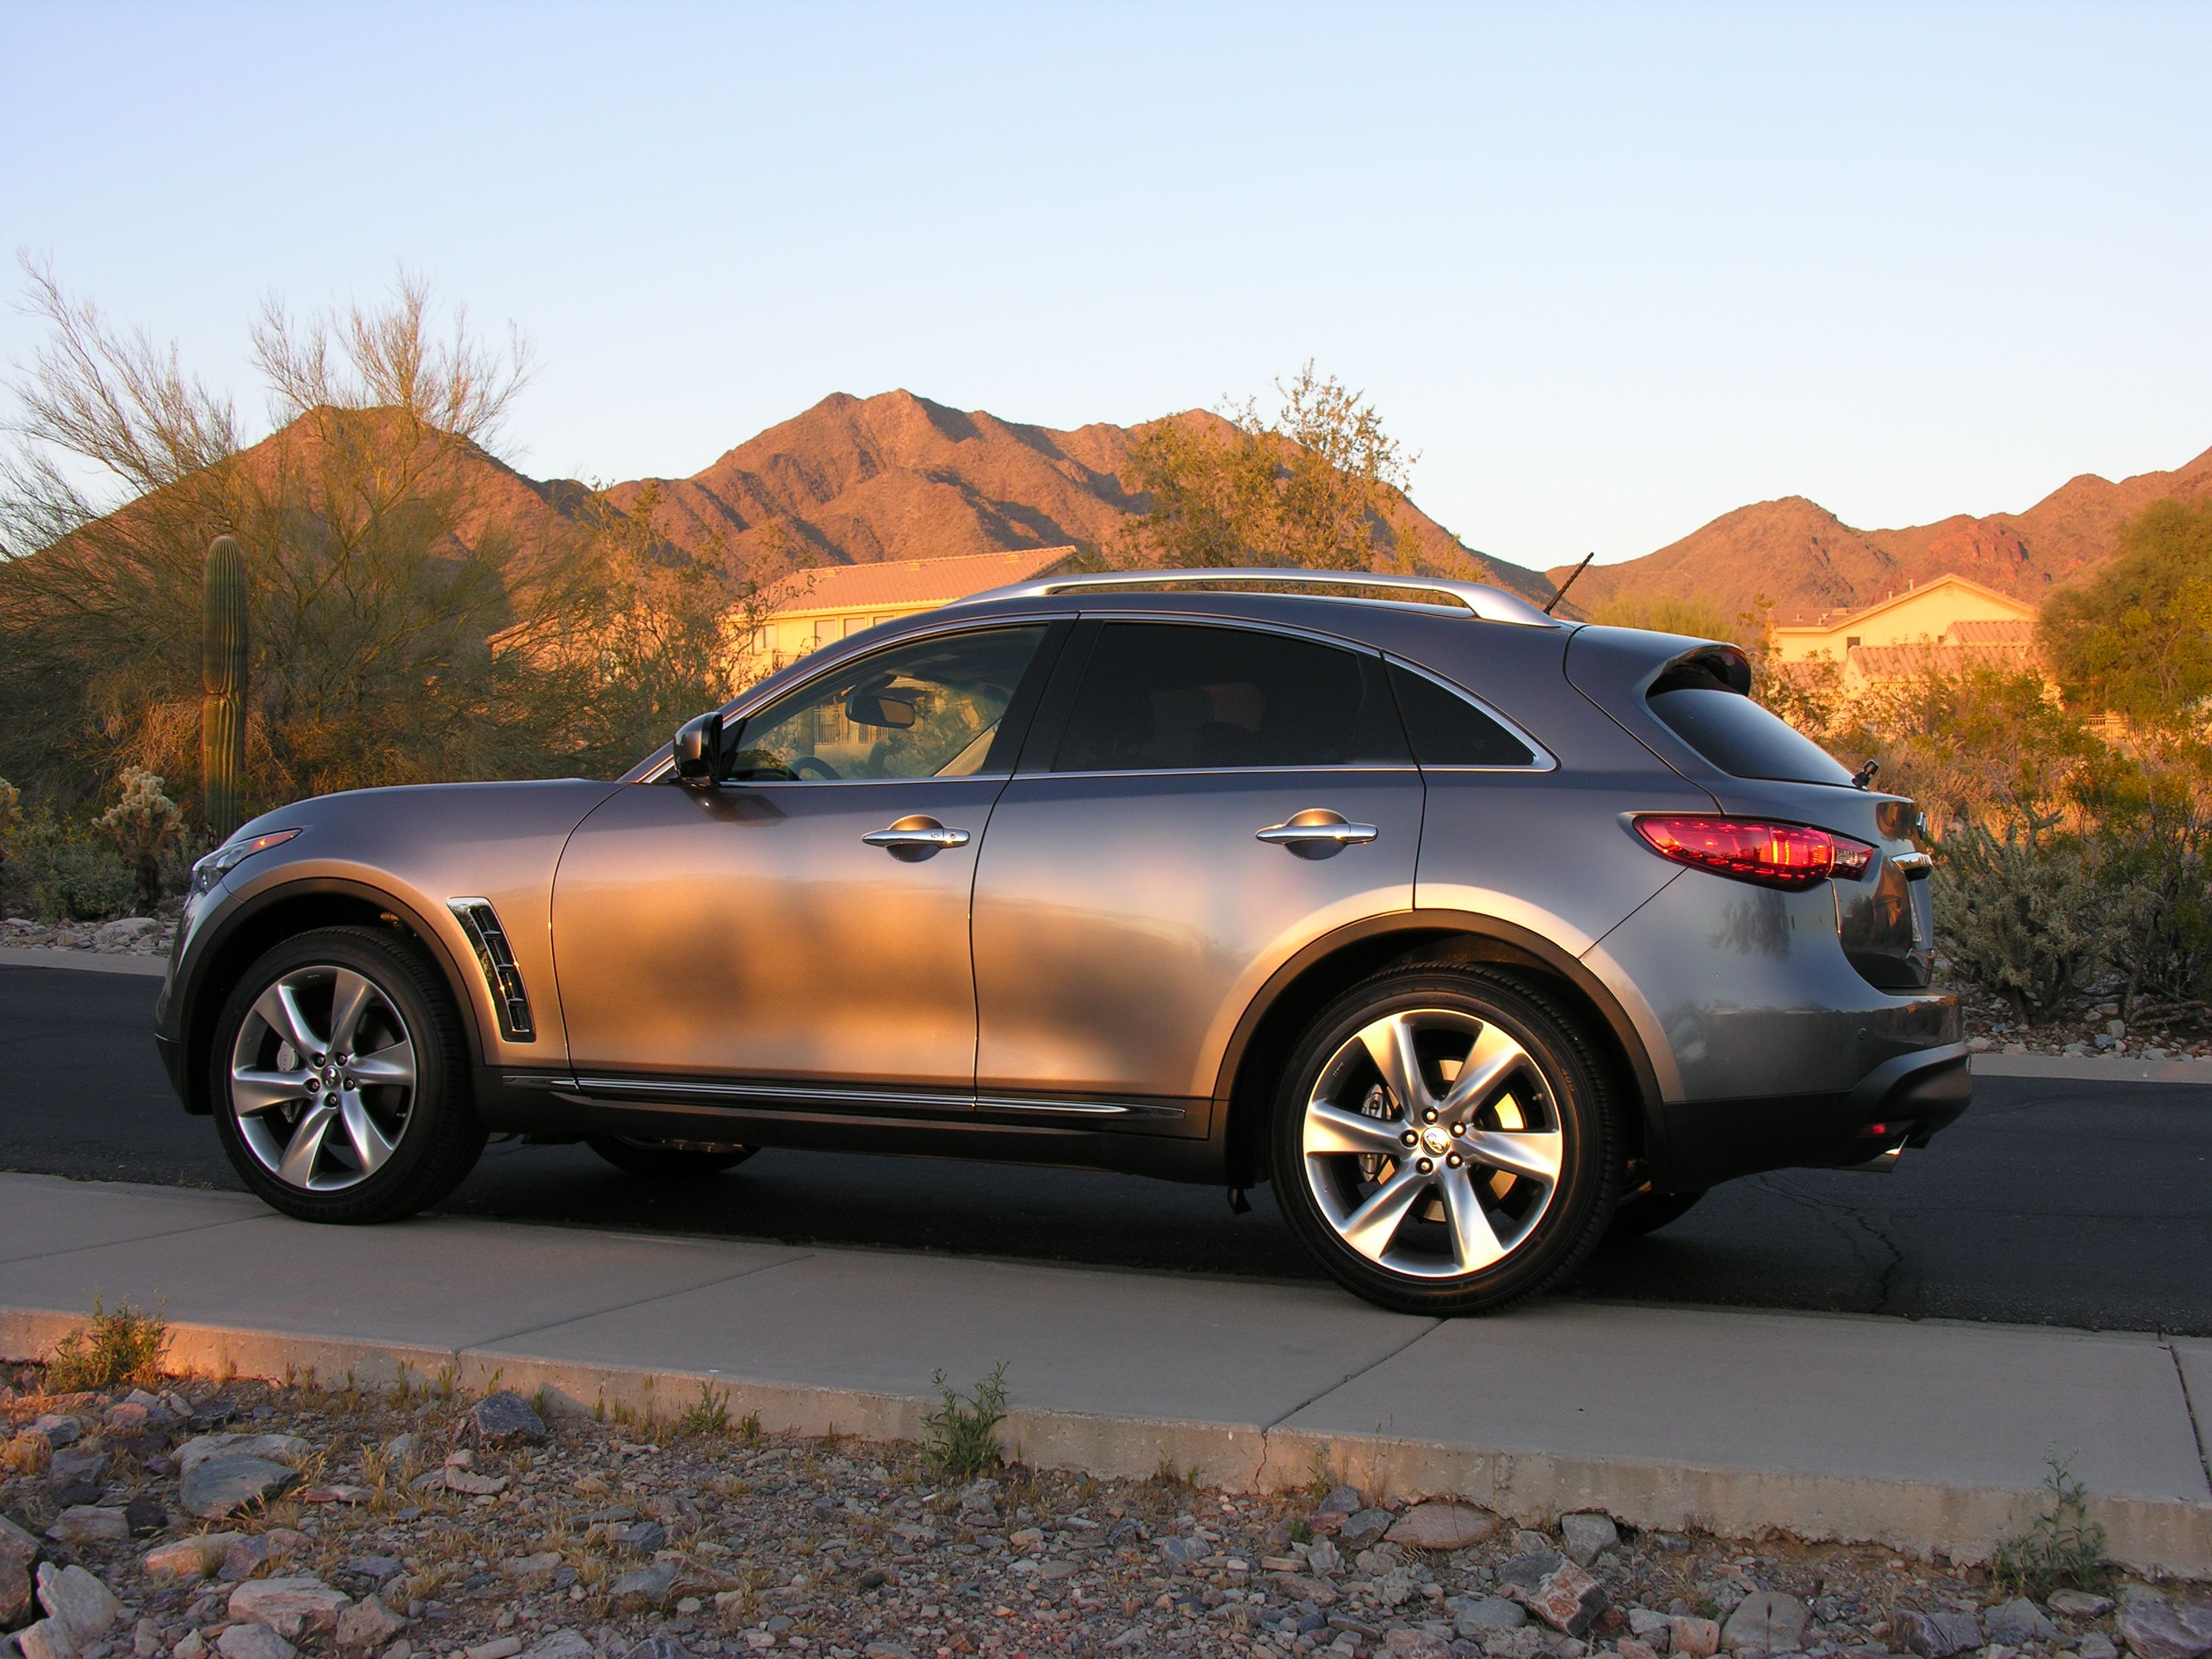 infiniti original interior reviews crossover car review model driver page s in depth photo and infinity